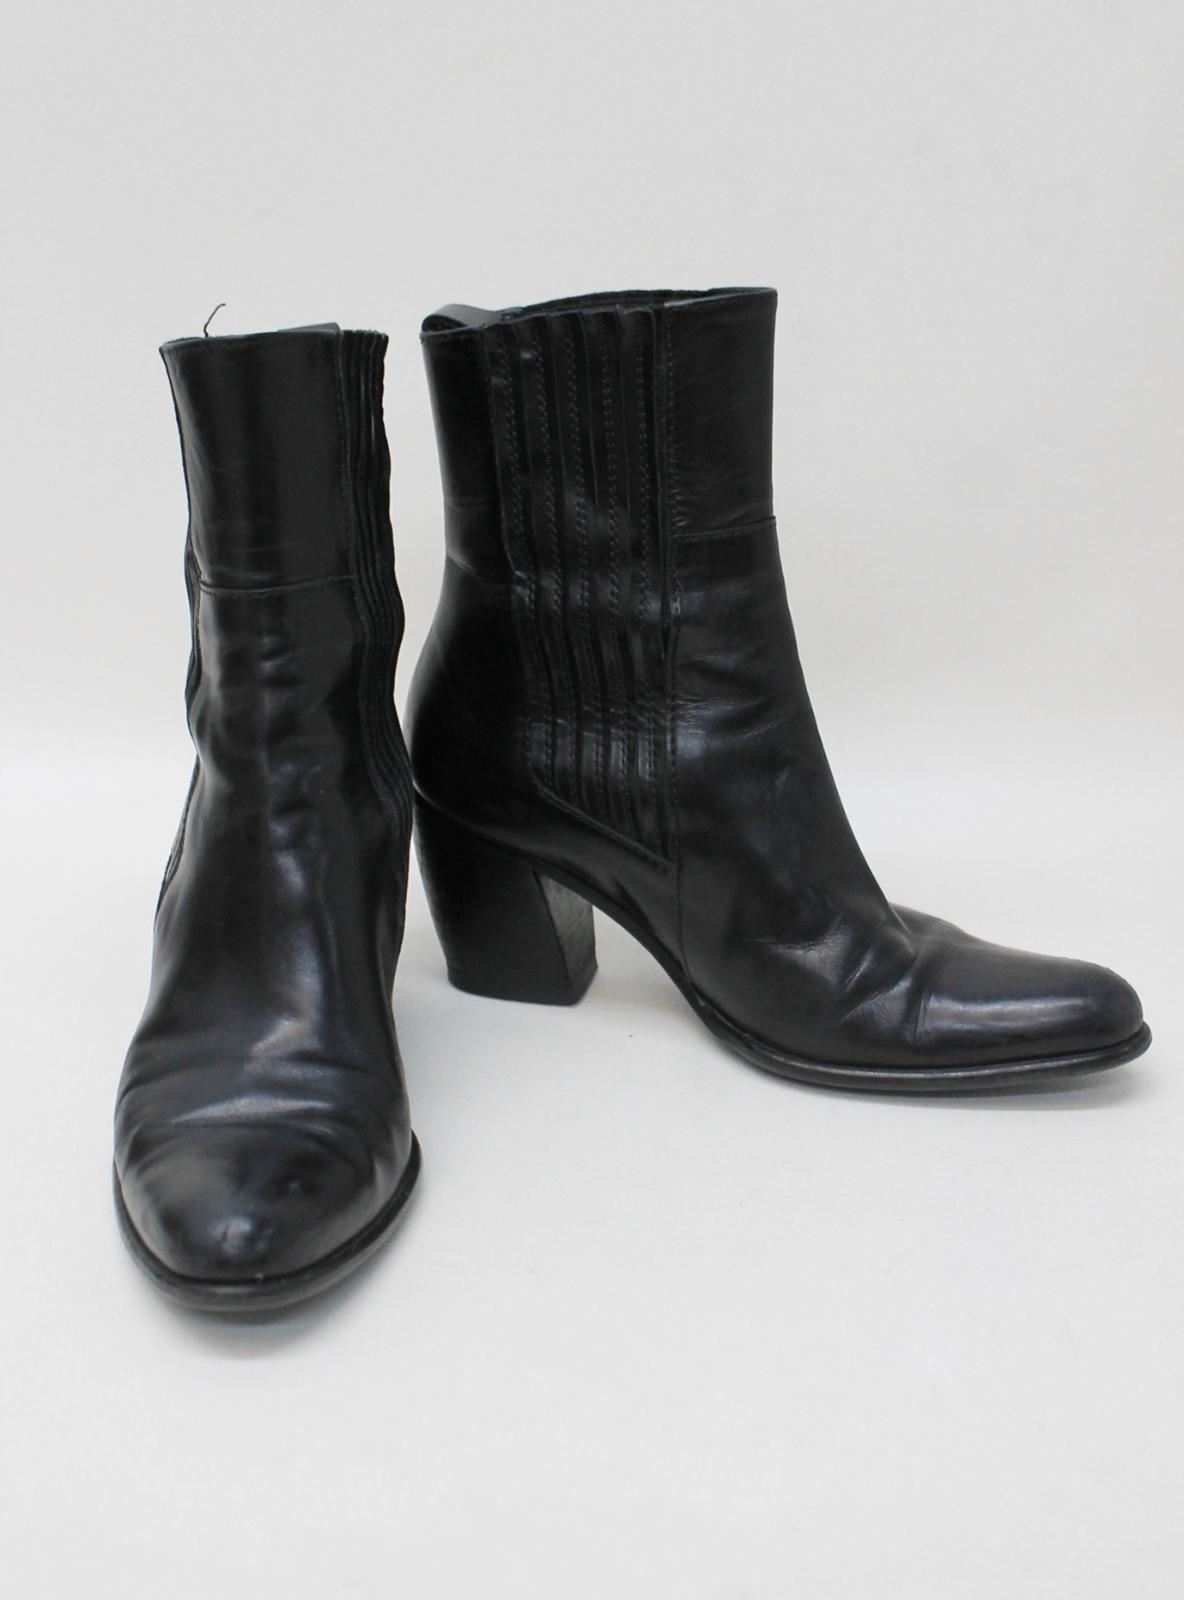 VENISE VENISE VENISE COLLECTION Ladies Black Leather Block Heeled Ankle Boots EU35.5 UK2.5 1c6ccf